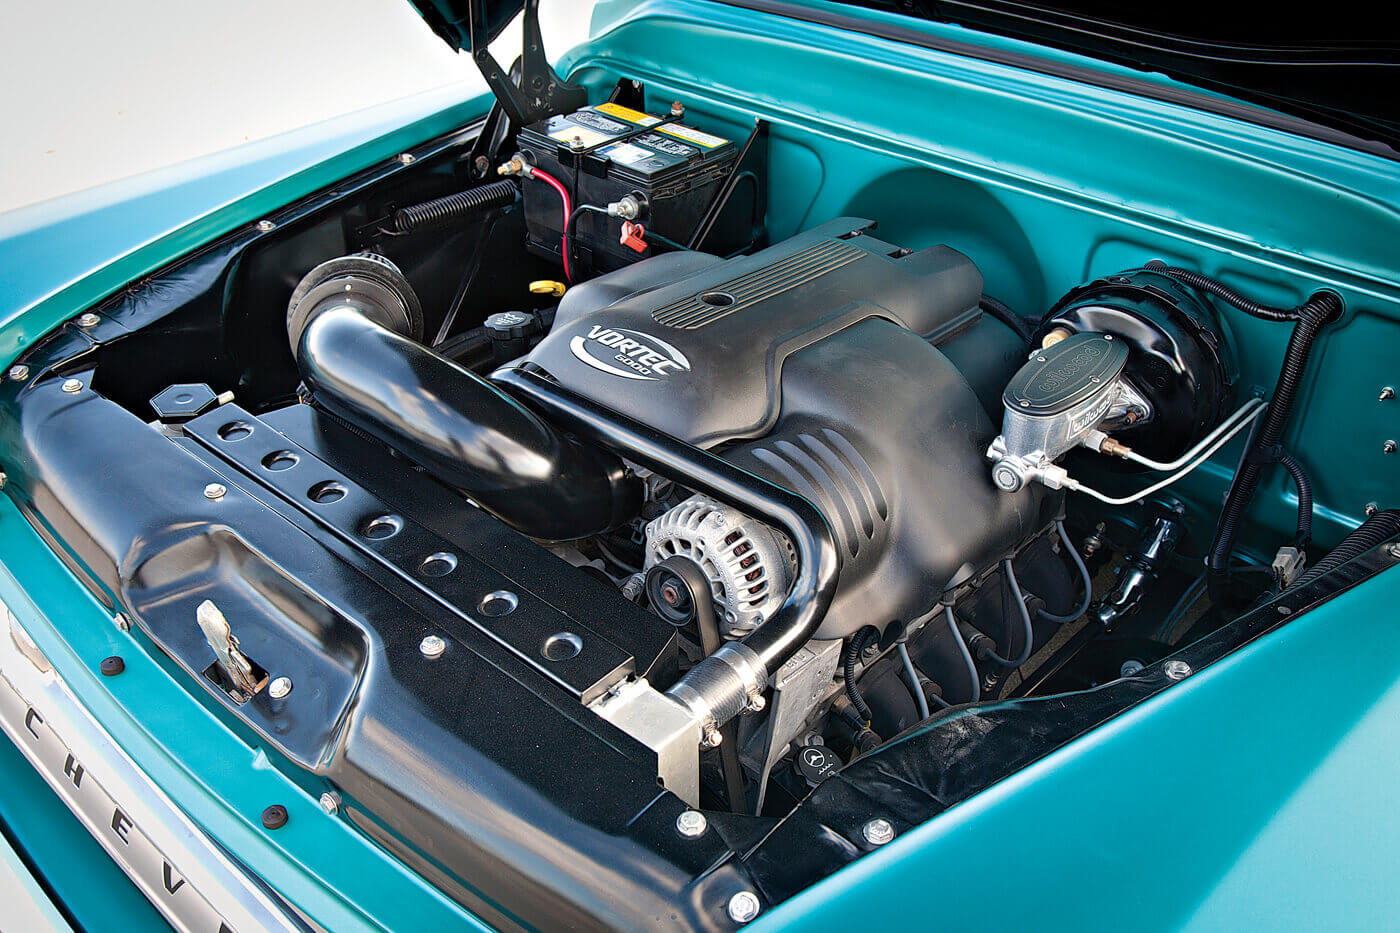 The engine compartment isn't covered in shiny accessories; it was kept clean to pull off the illusion that it originally came with this modern LQ9 engine.